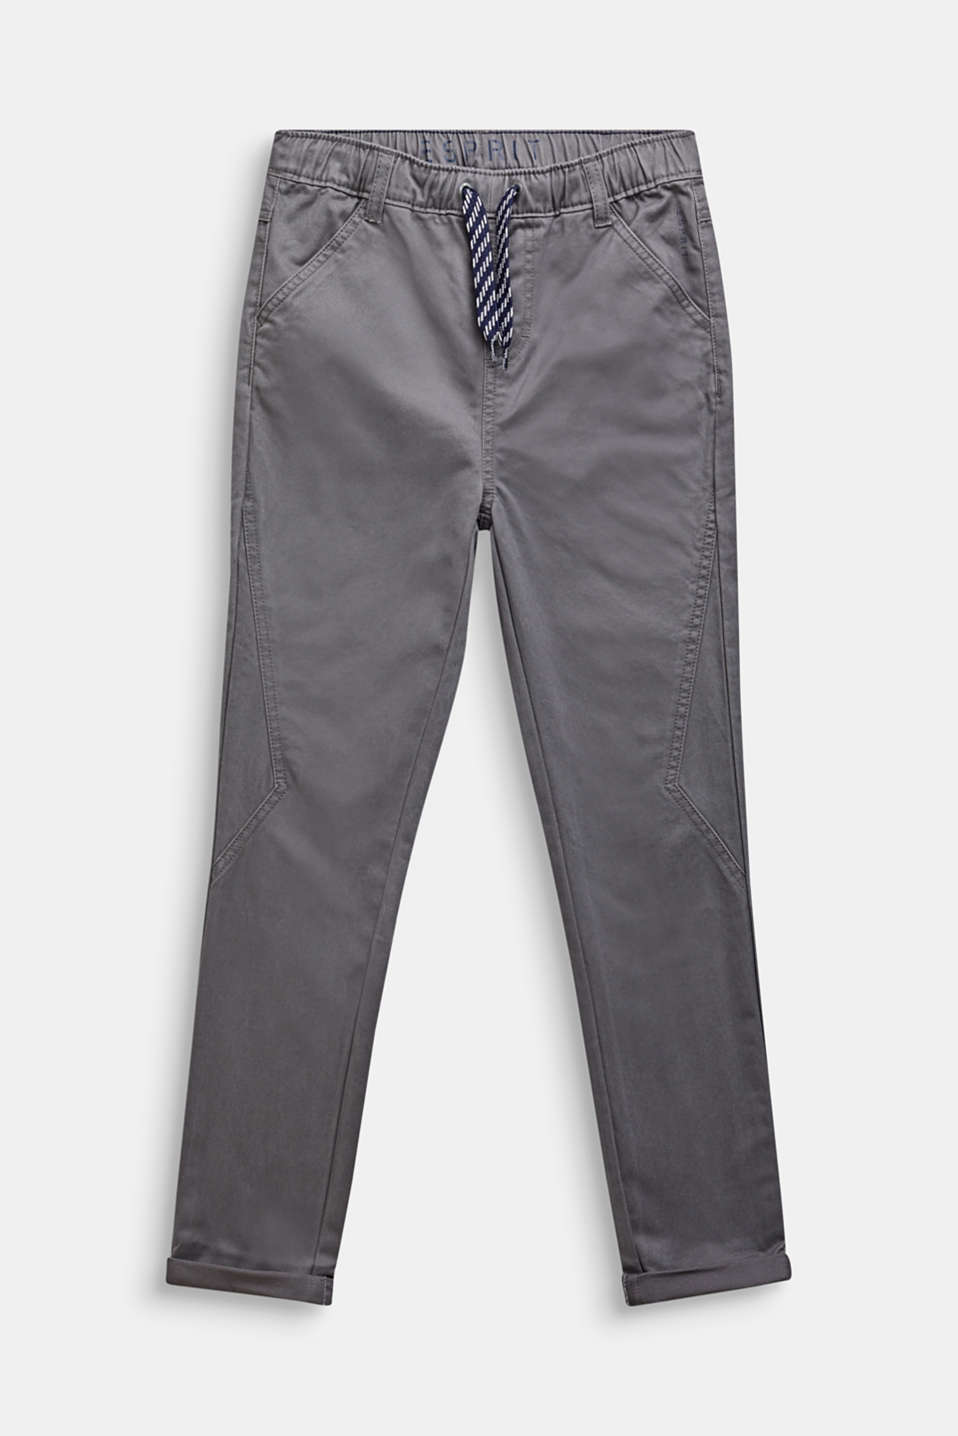 Trousers with a drawstring waistband, 100% cotton, LCGREY STONE, detail image number 0